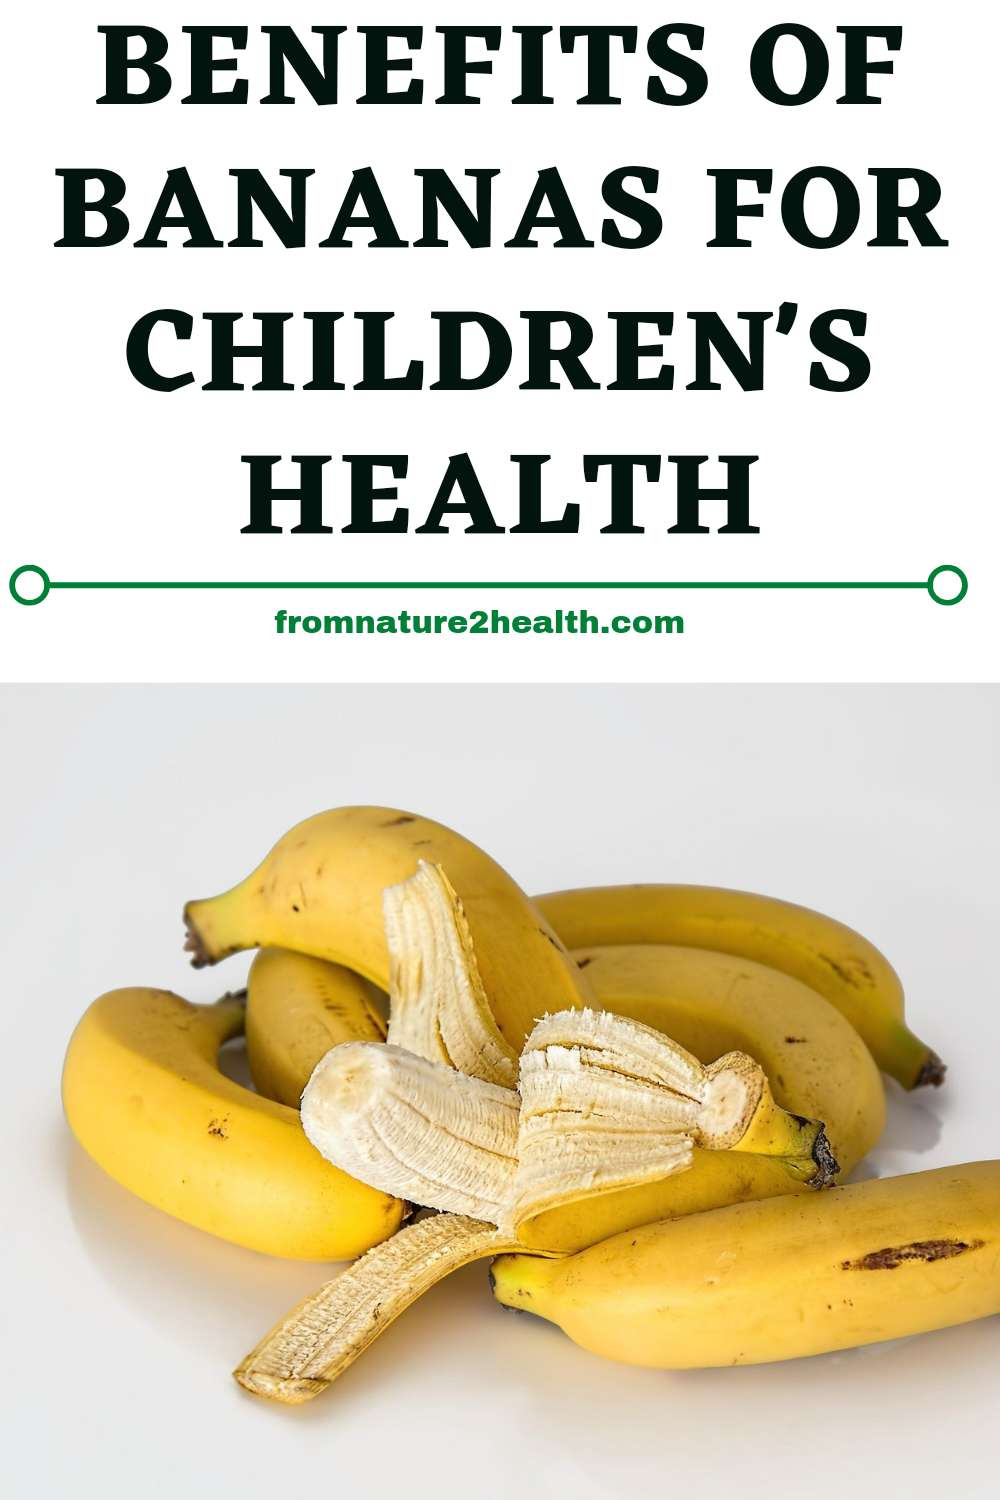 Benefits of Bananas for Children's Health